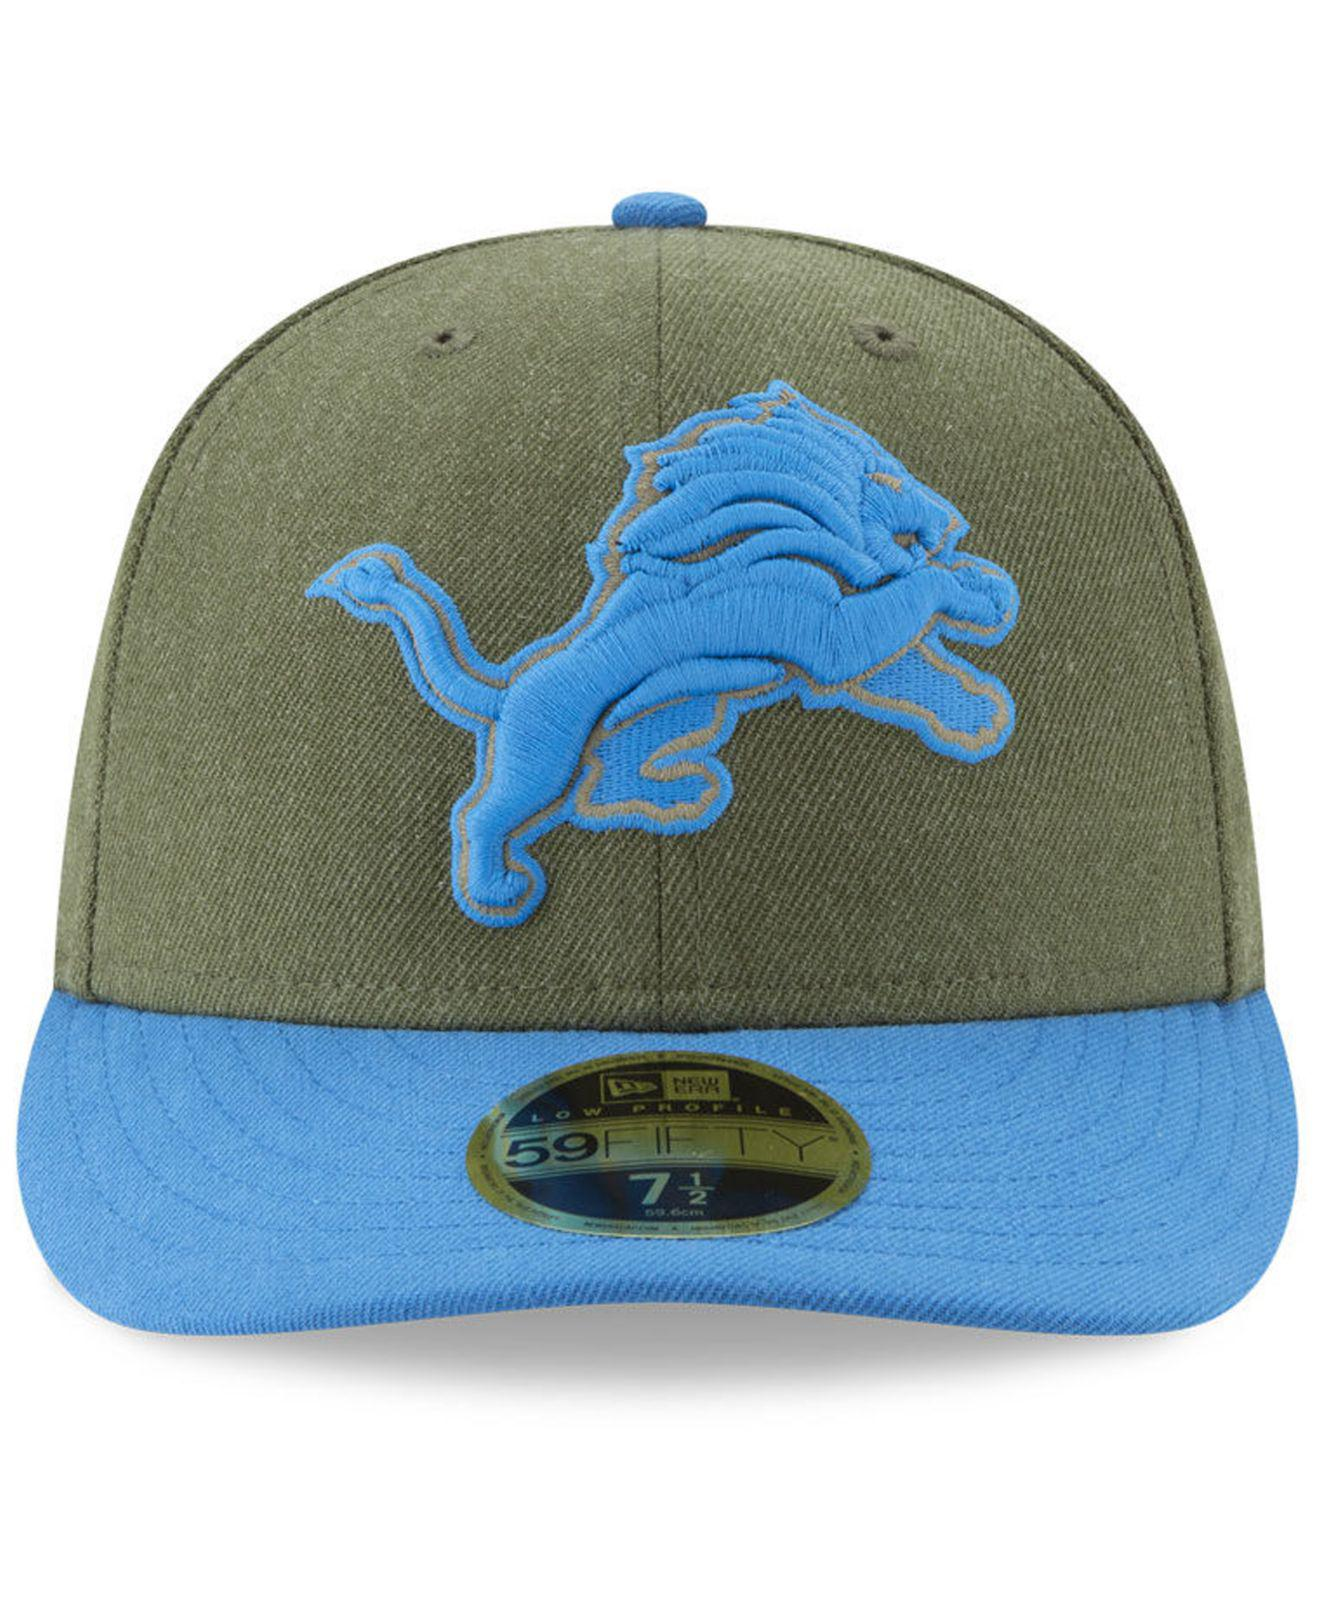 Lyst - KTZ Detroit Lions Salute To Service Low Profile 59fifty Fitted Cap  2018 in Green for Men 43b44de88